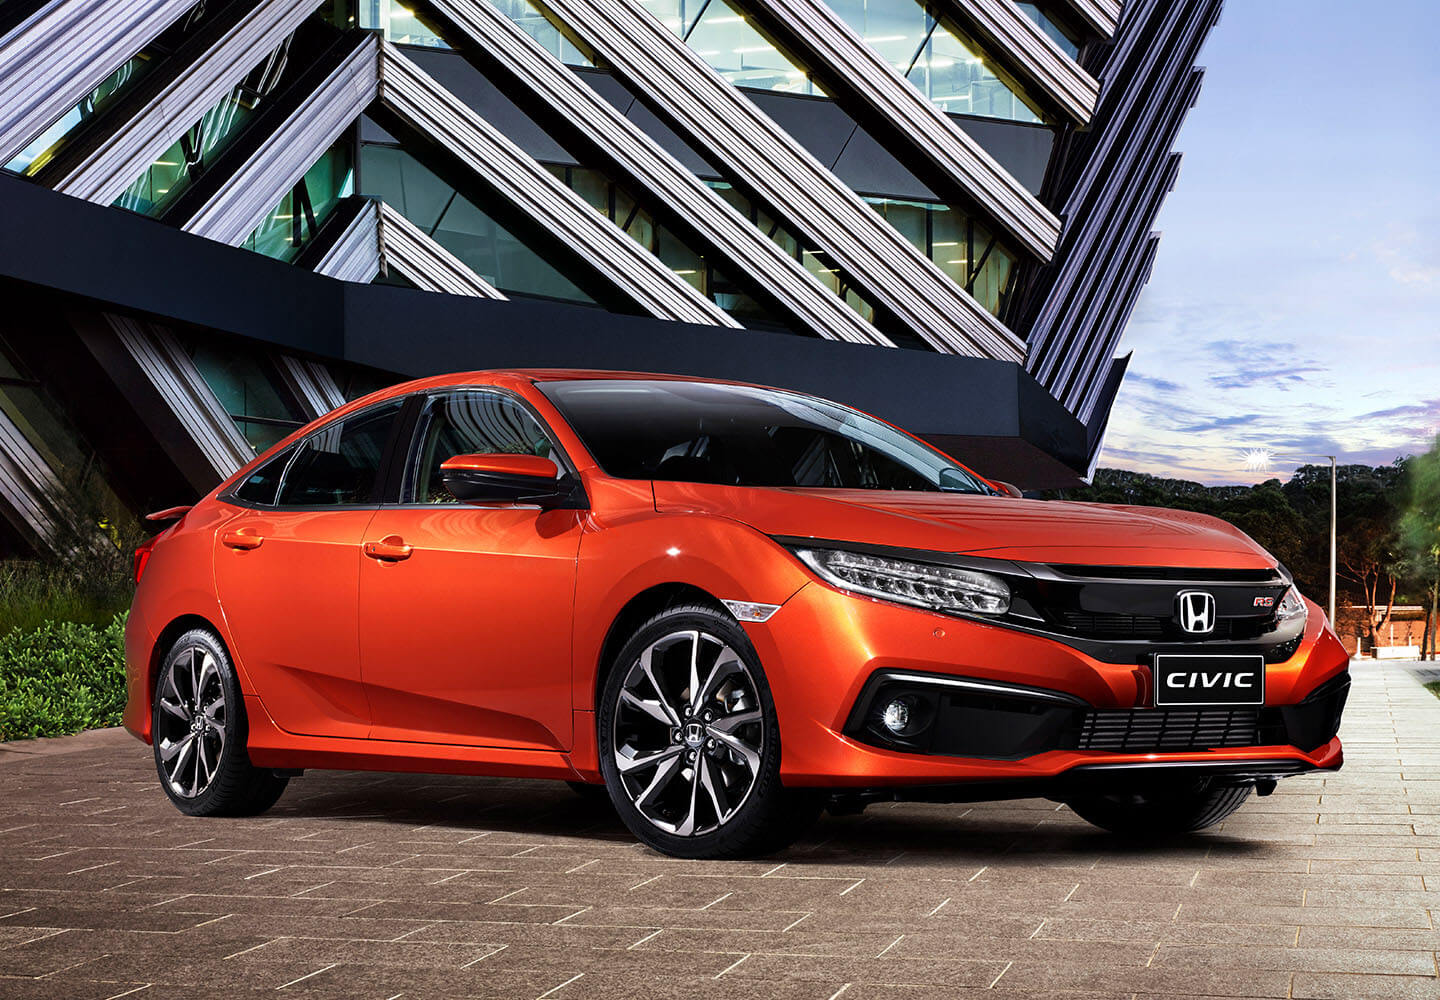 Civic Sedan Bold Design